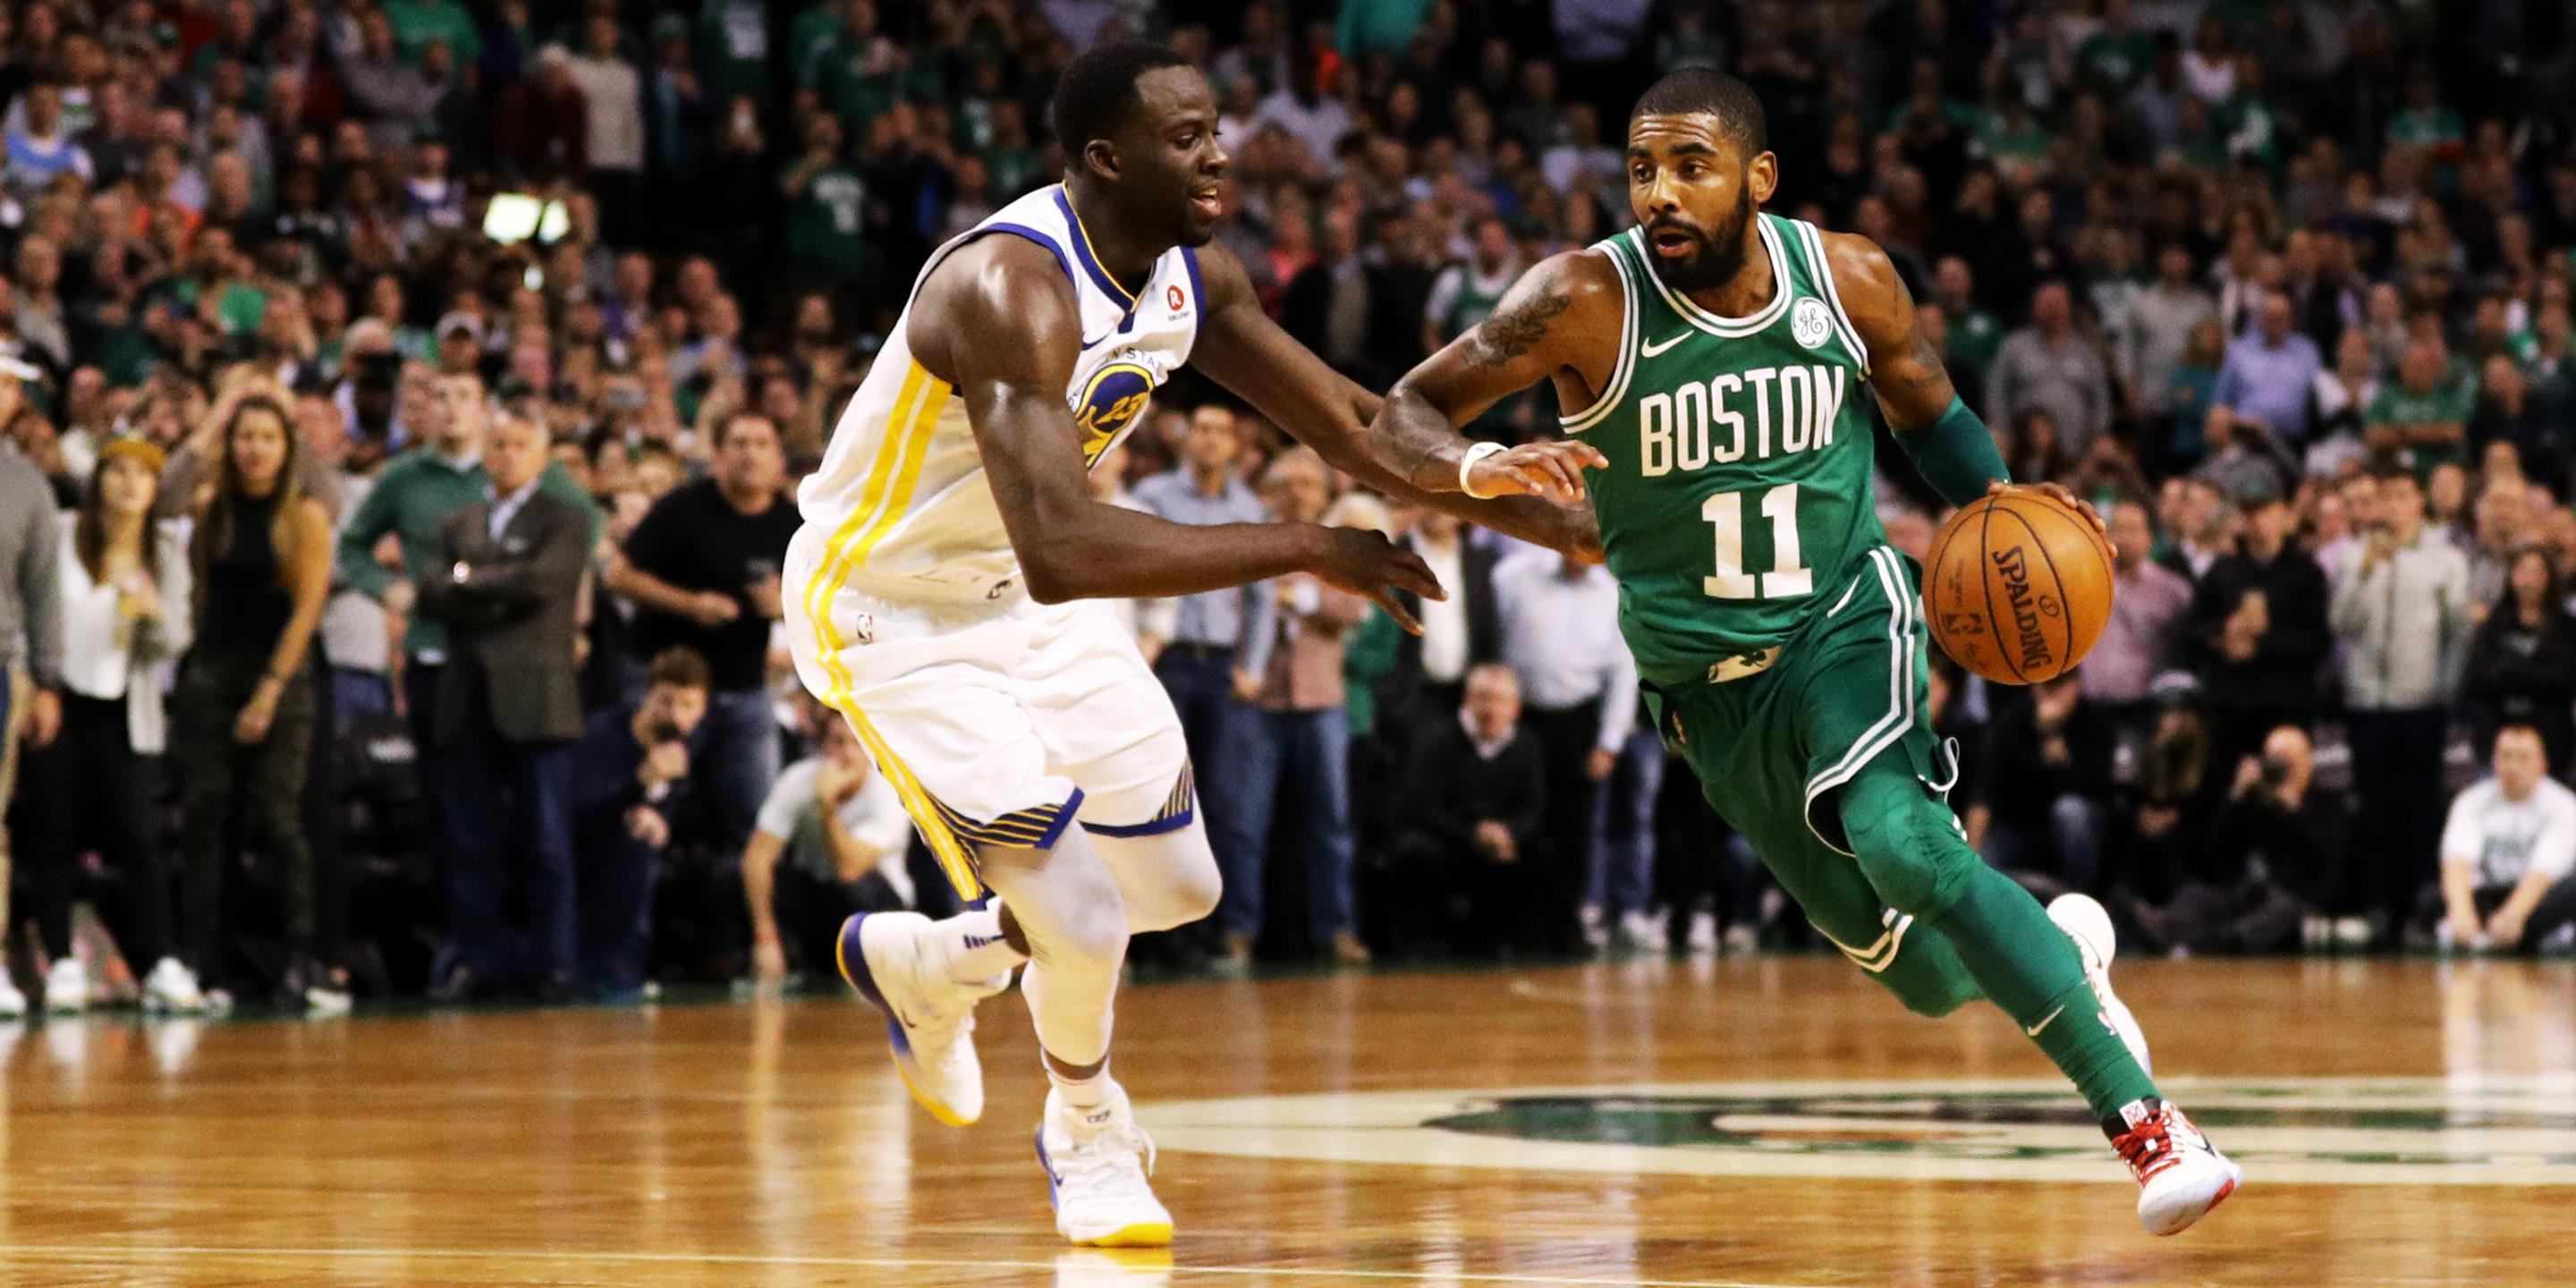 Prevent Injuries, How NBA Players Build Endurance - Furthermore